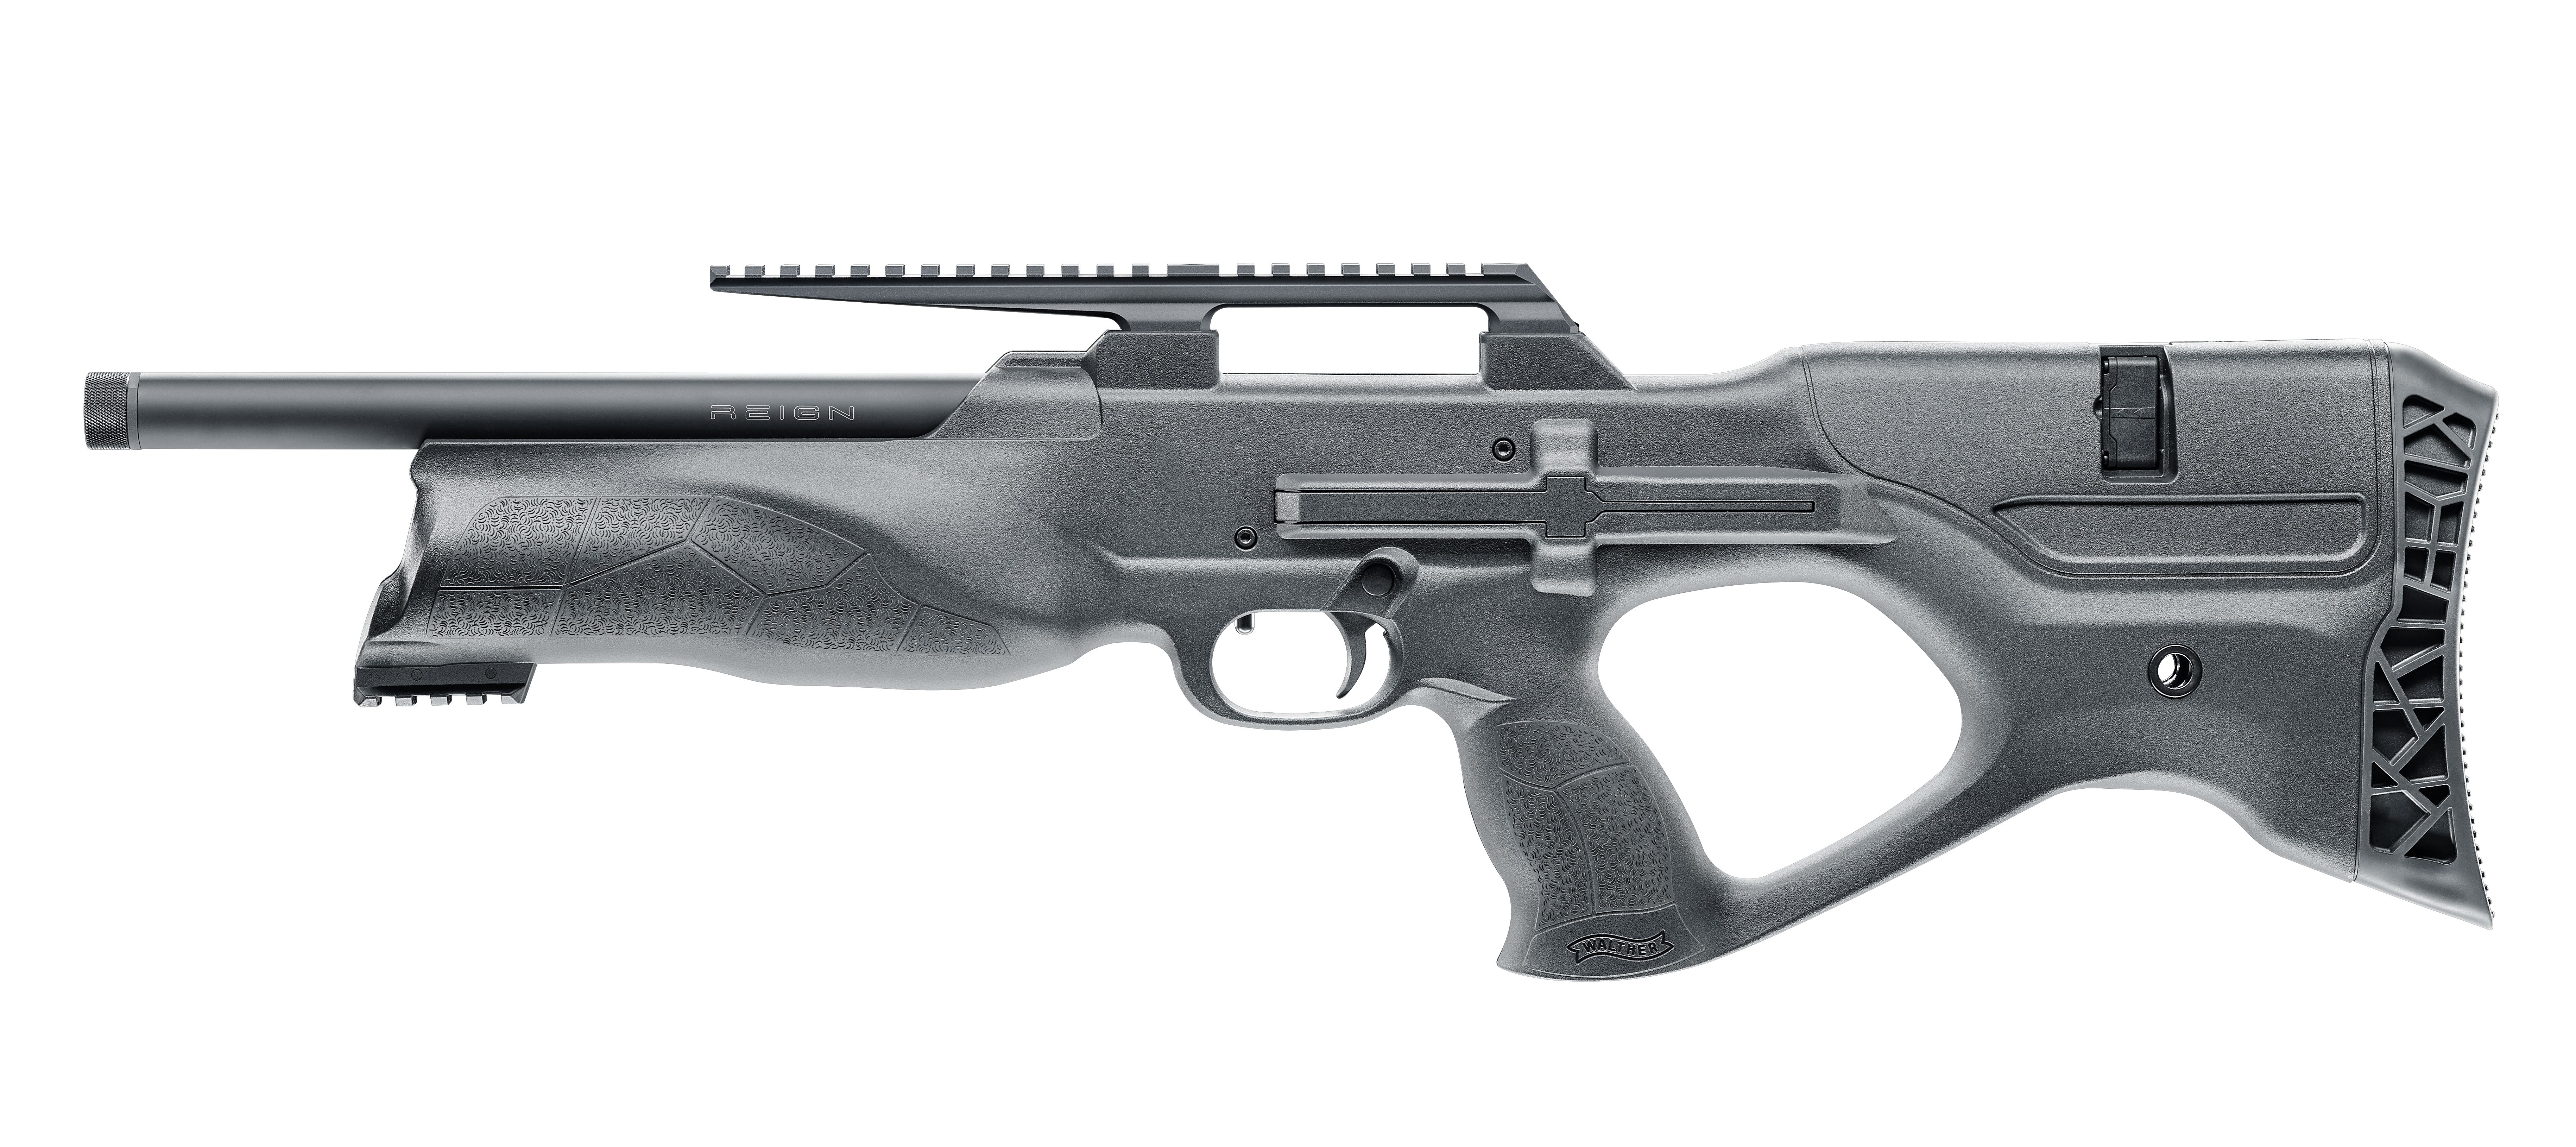 WALTHER (Umarex) PCP Operated Airgun Reign